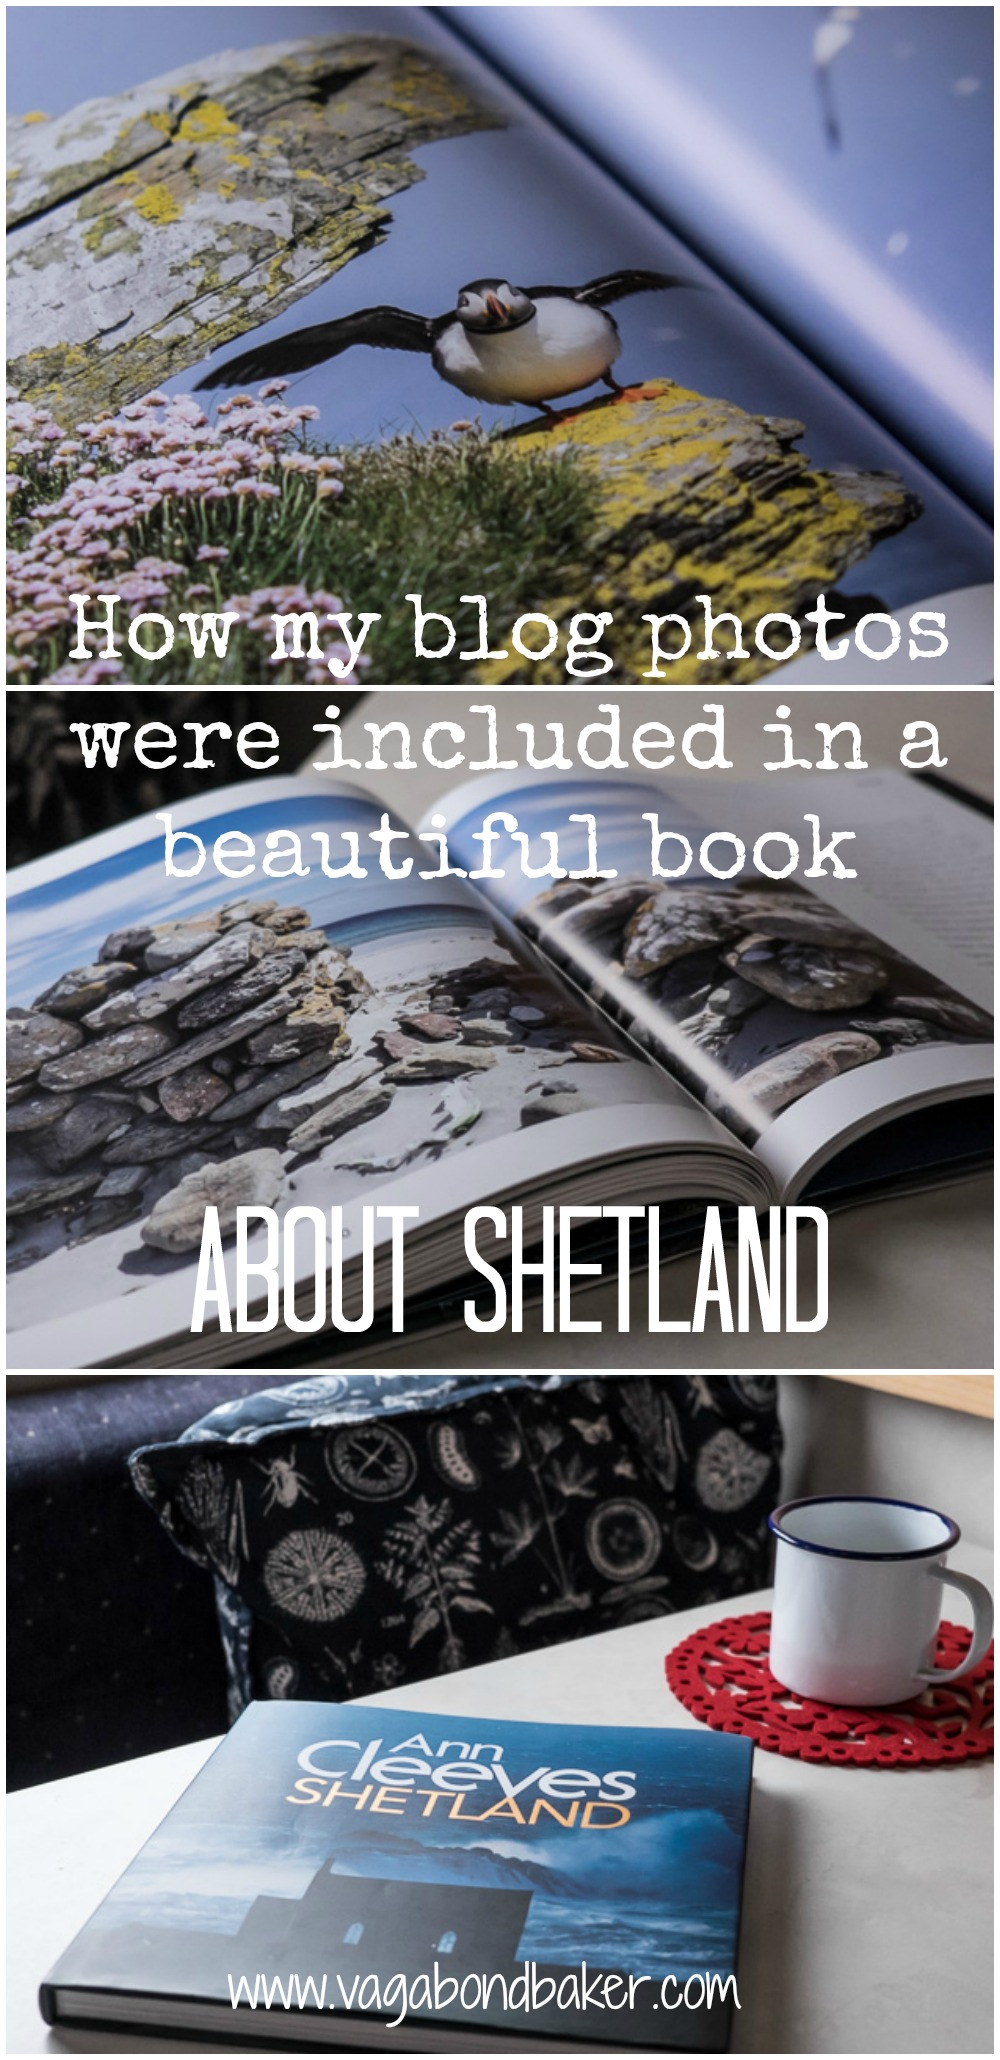 How My Blog Photos Were Included in a Beautiful Book About Shetland